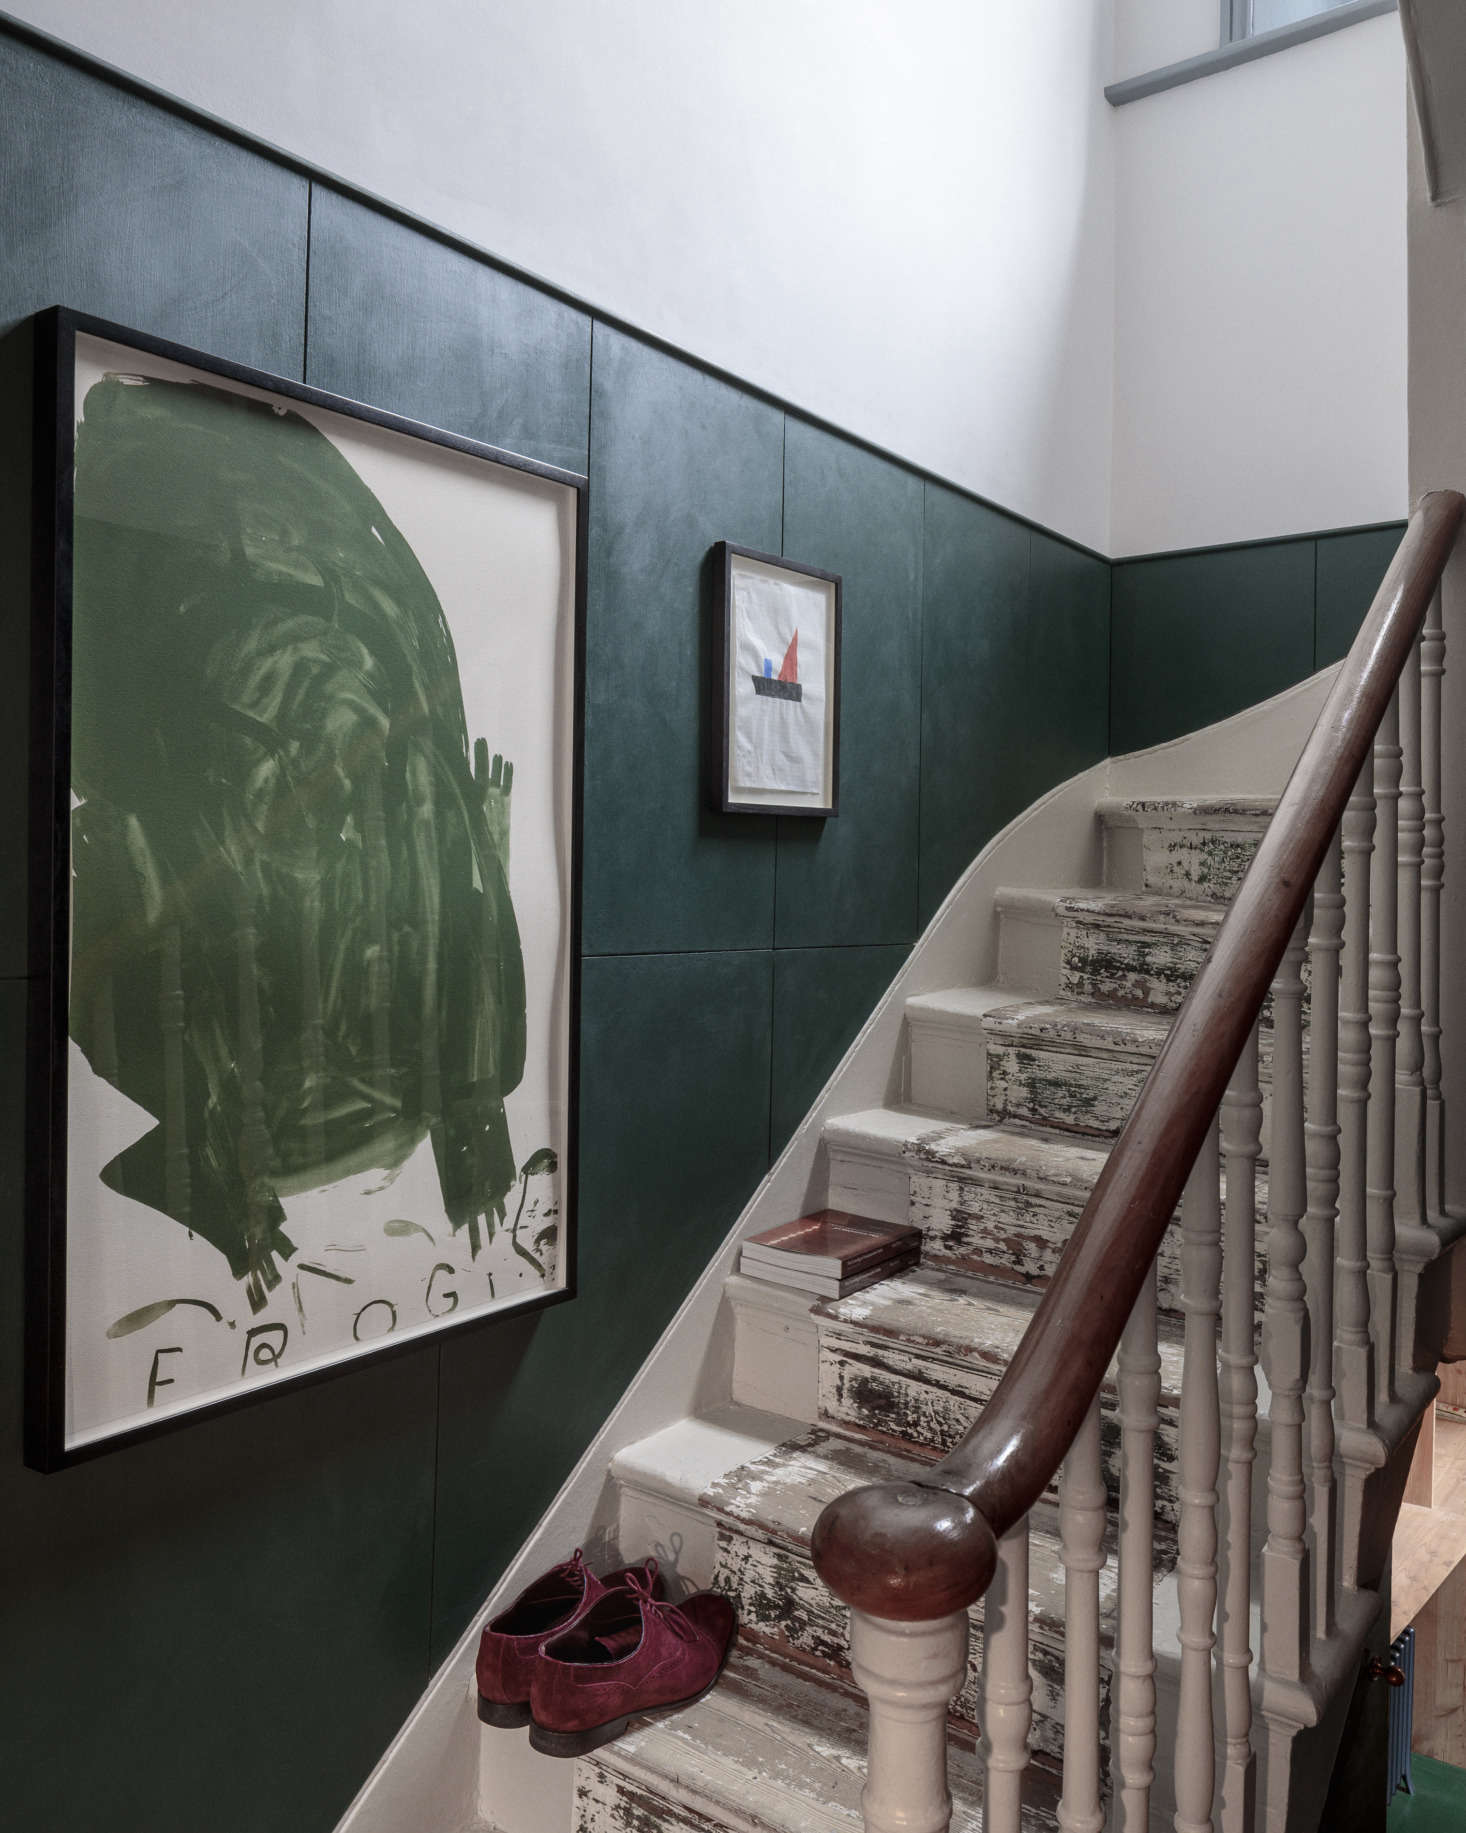 The staircase was artfully preserved—with its old runner removed and the remaining footprint left as is, but the sides of the steps were carefully repainted. What the architects describe as &#8